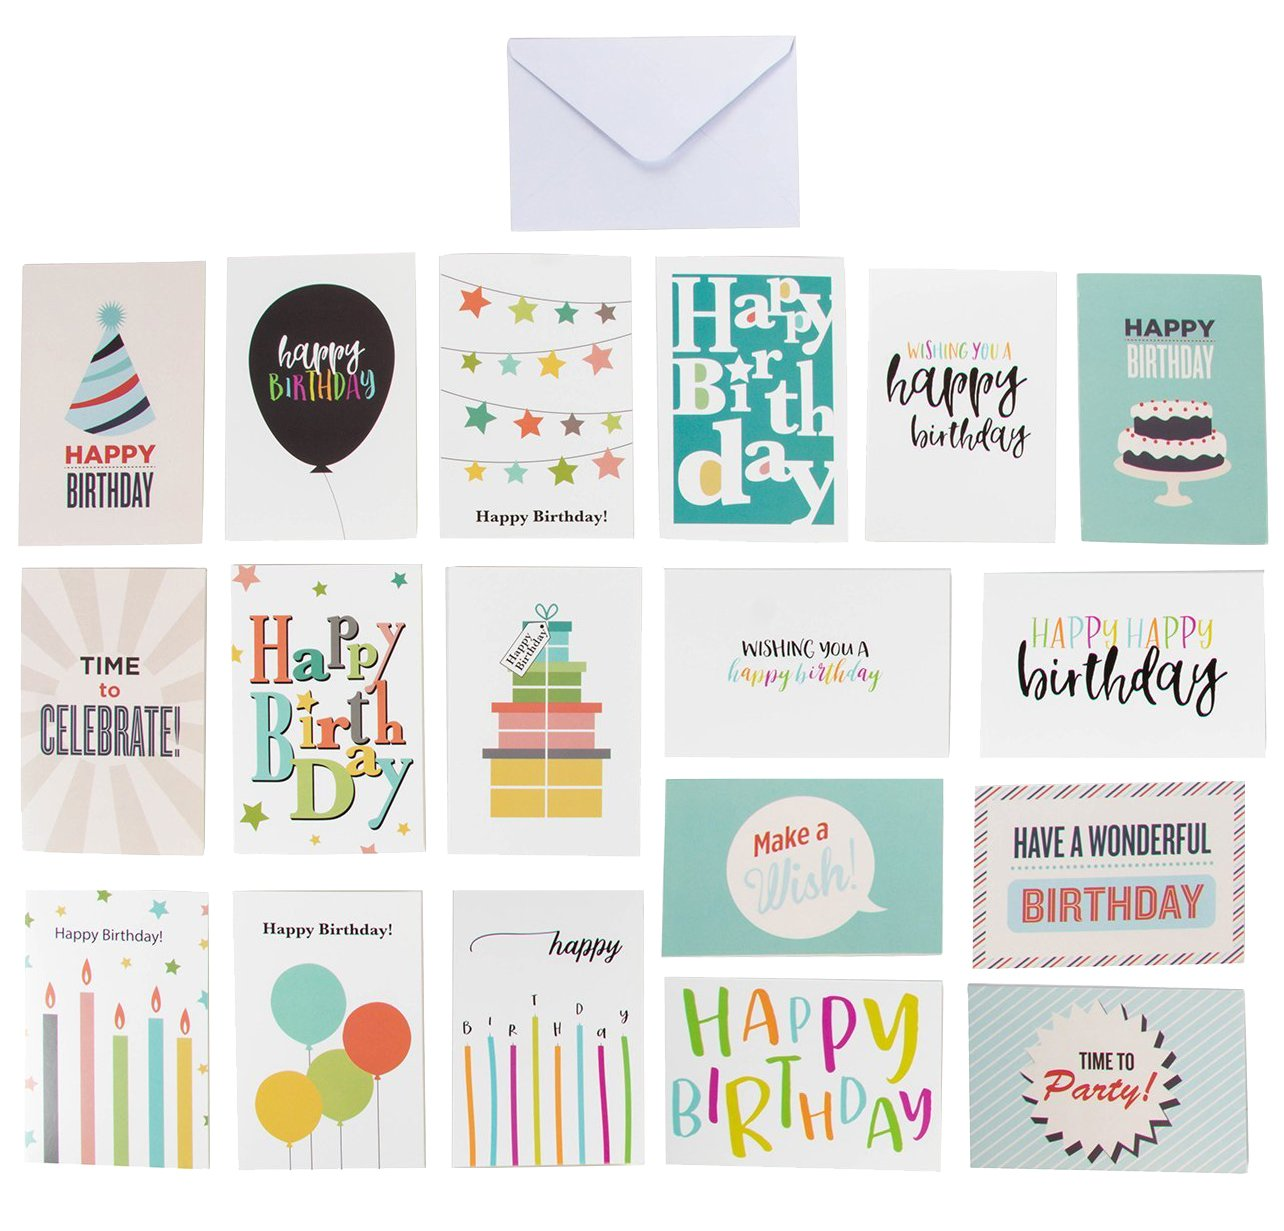 144-Pack Happy Birthday Cards - Includes 18 Colorful Designs with Party Hats, Balloons, Gift Boxes, Birthday Cake and Stars, 8 of Each, Bulk Box Set Variety Pack with Envelopes Included, 4 x 6 Inches by Best Paper Greetings